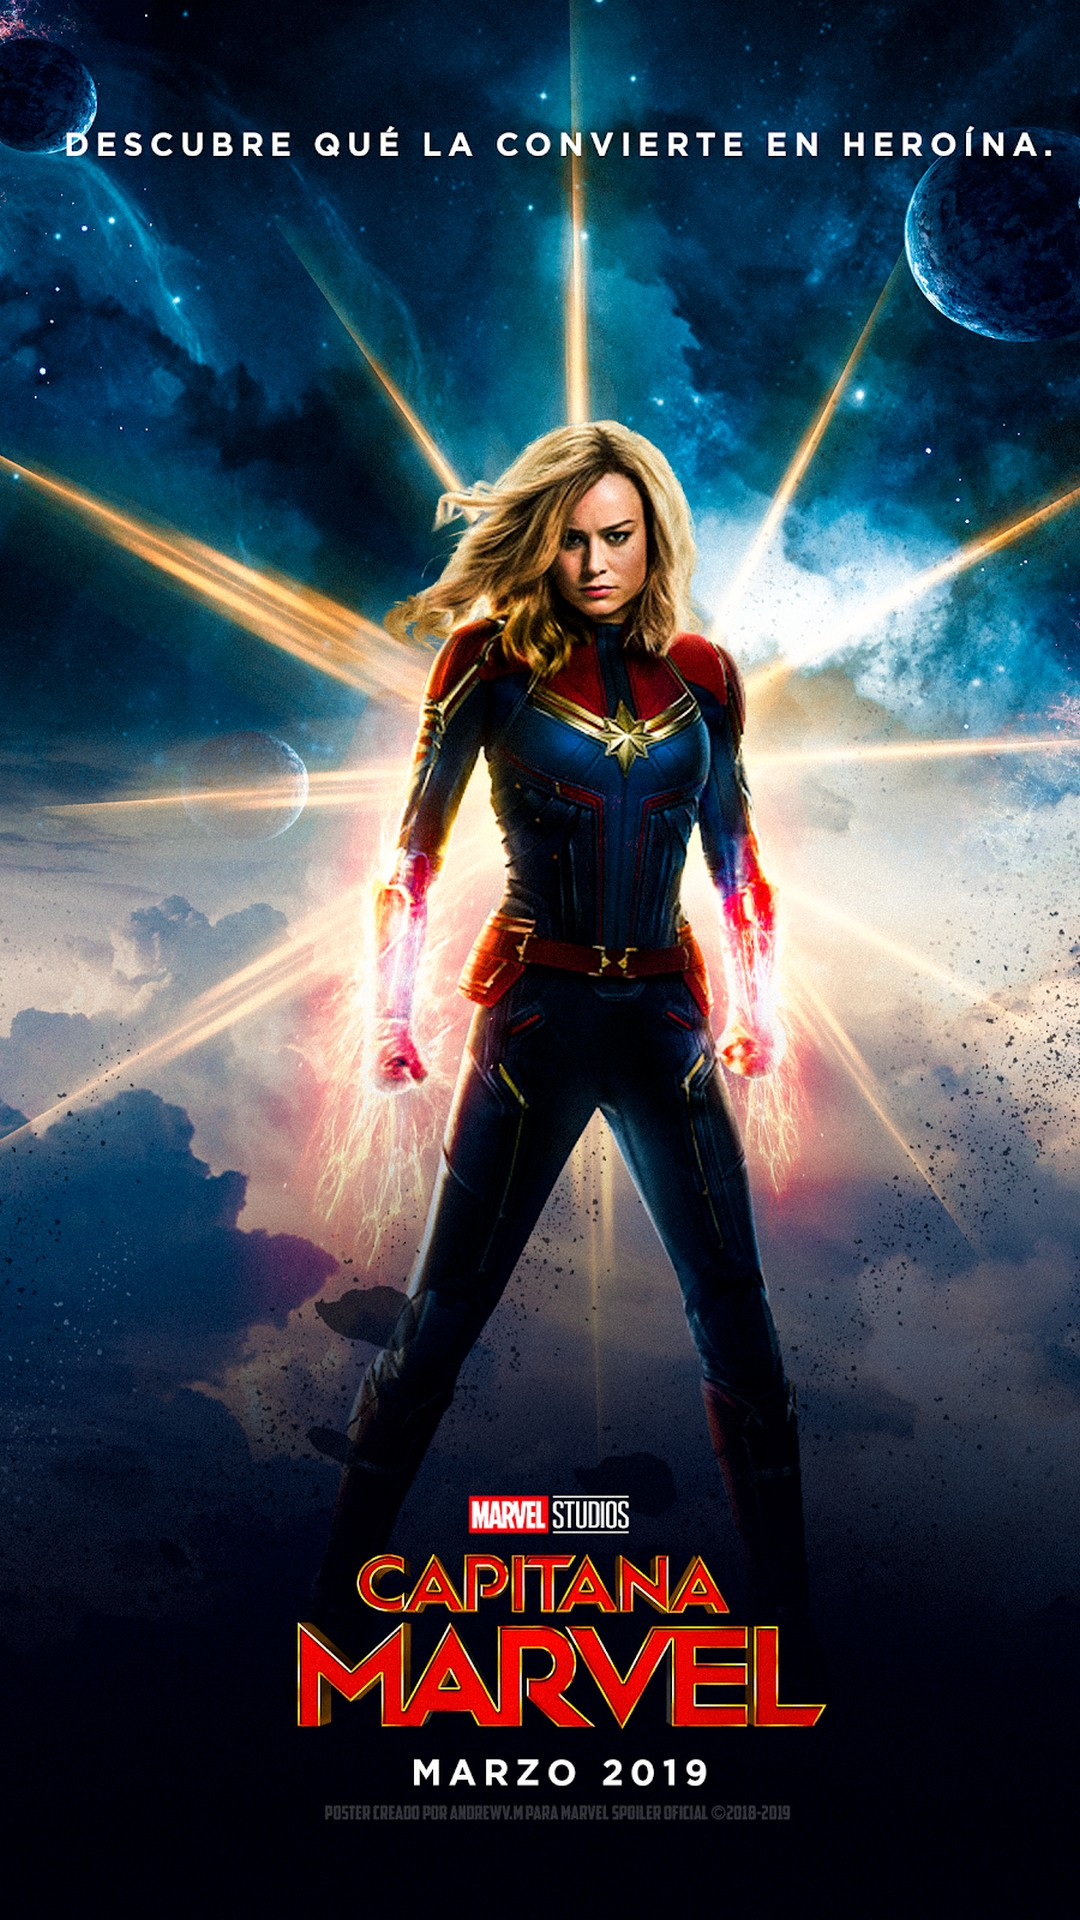 download Captain Marvel Android Wallpaper 2019 Movie Poster 1080x1920